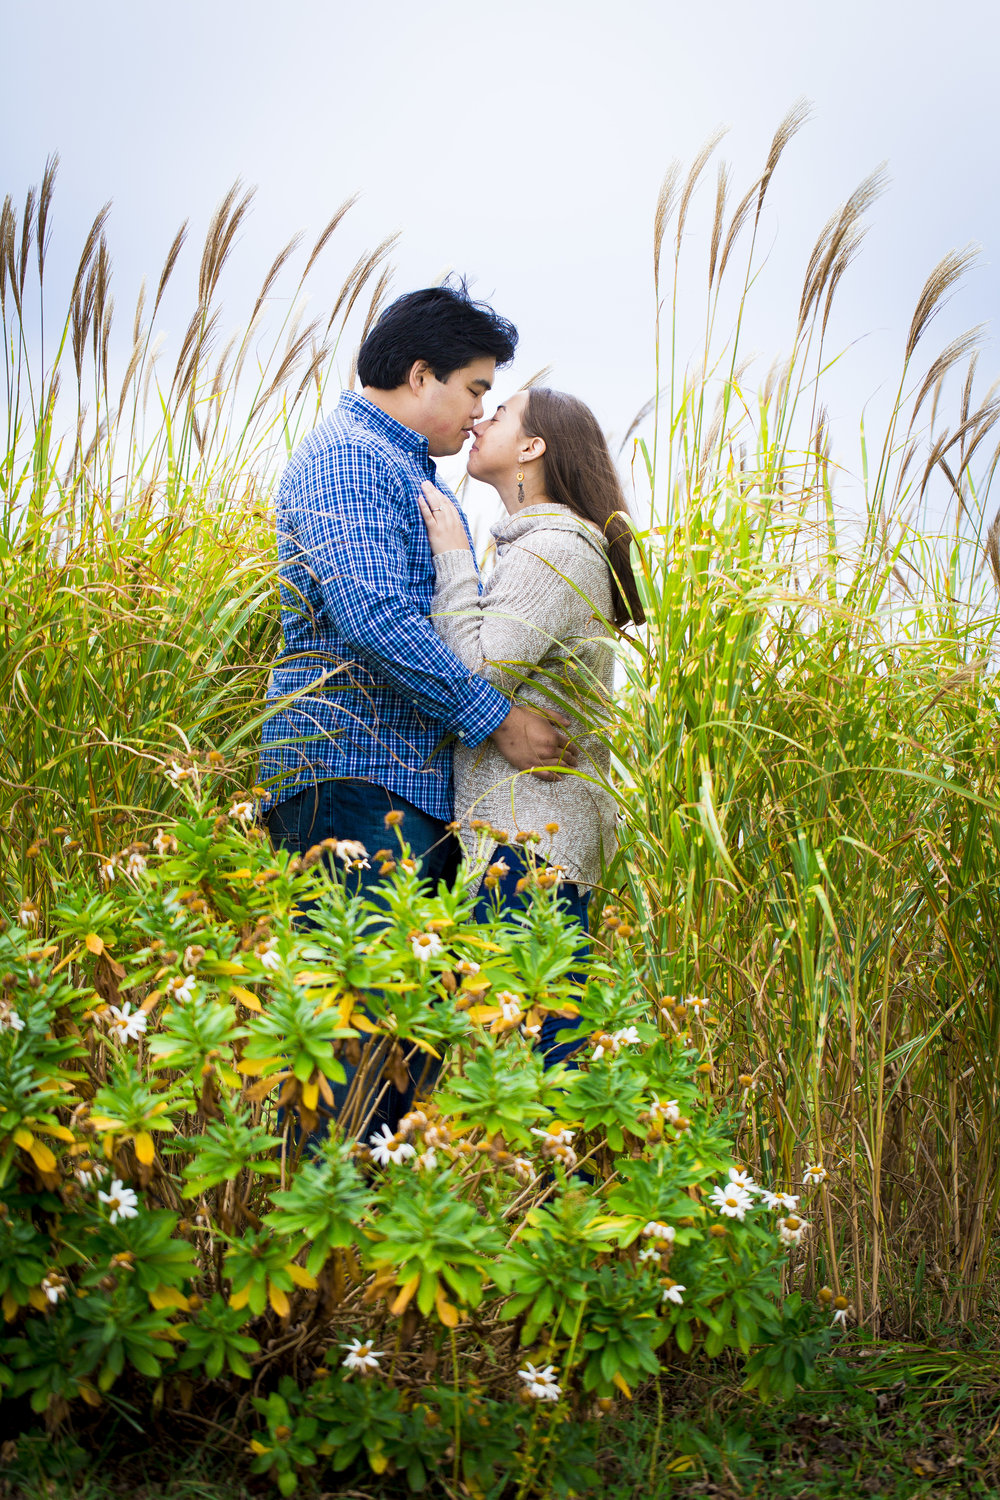 314A3813 Giovanni The Photographer Best Boston Wedding PhotographyErica and Richard's Engagement Session 10-29-17.jpg